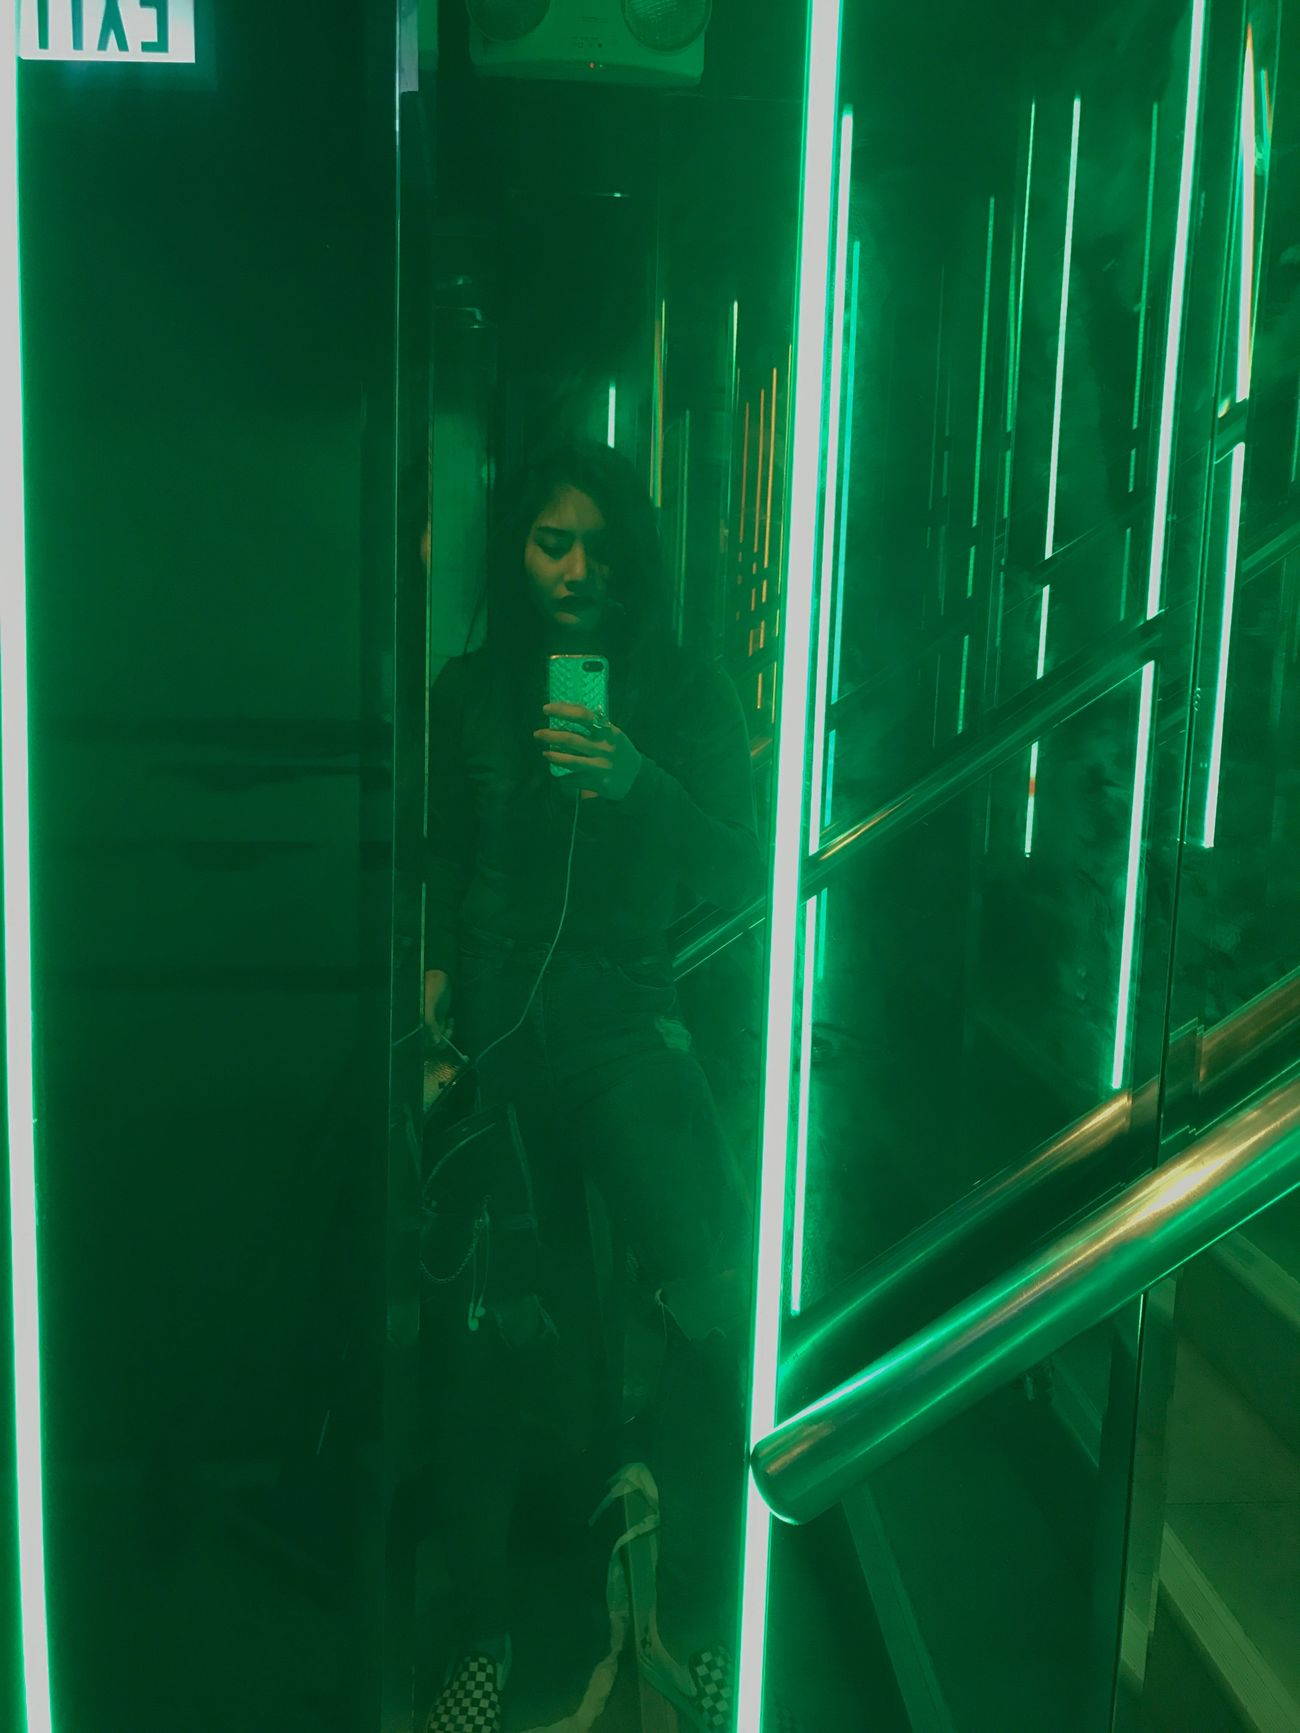 Every second you will not regret it One Person Real People Young Women Green Color Enjoying Life Night So Happy DOPE Selfie That's Me SexyGirl.♥ FeelingMyself Escaping ShowMeYourDarkSide Last Drink, I Promise Living Dangerously LastNight :)